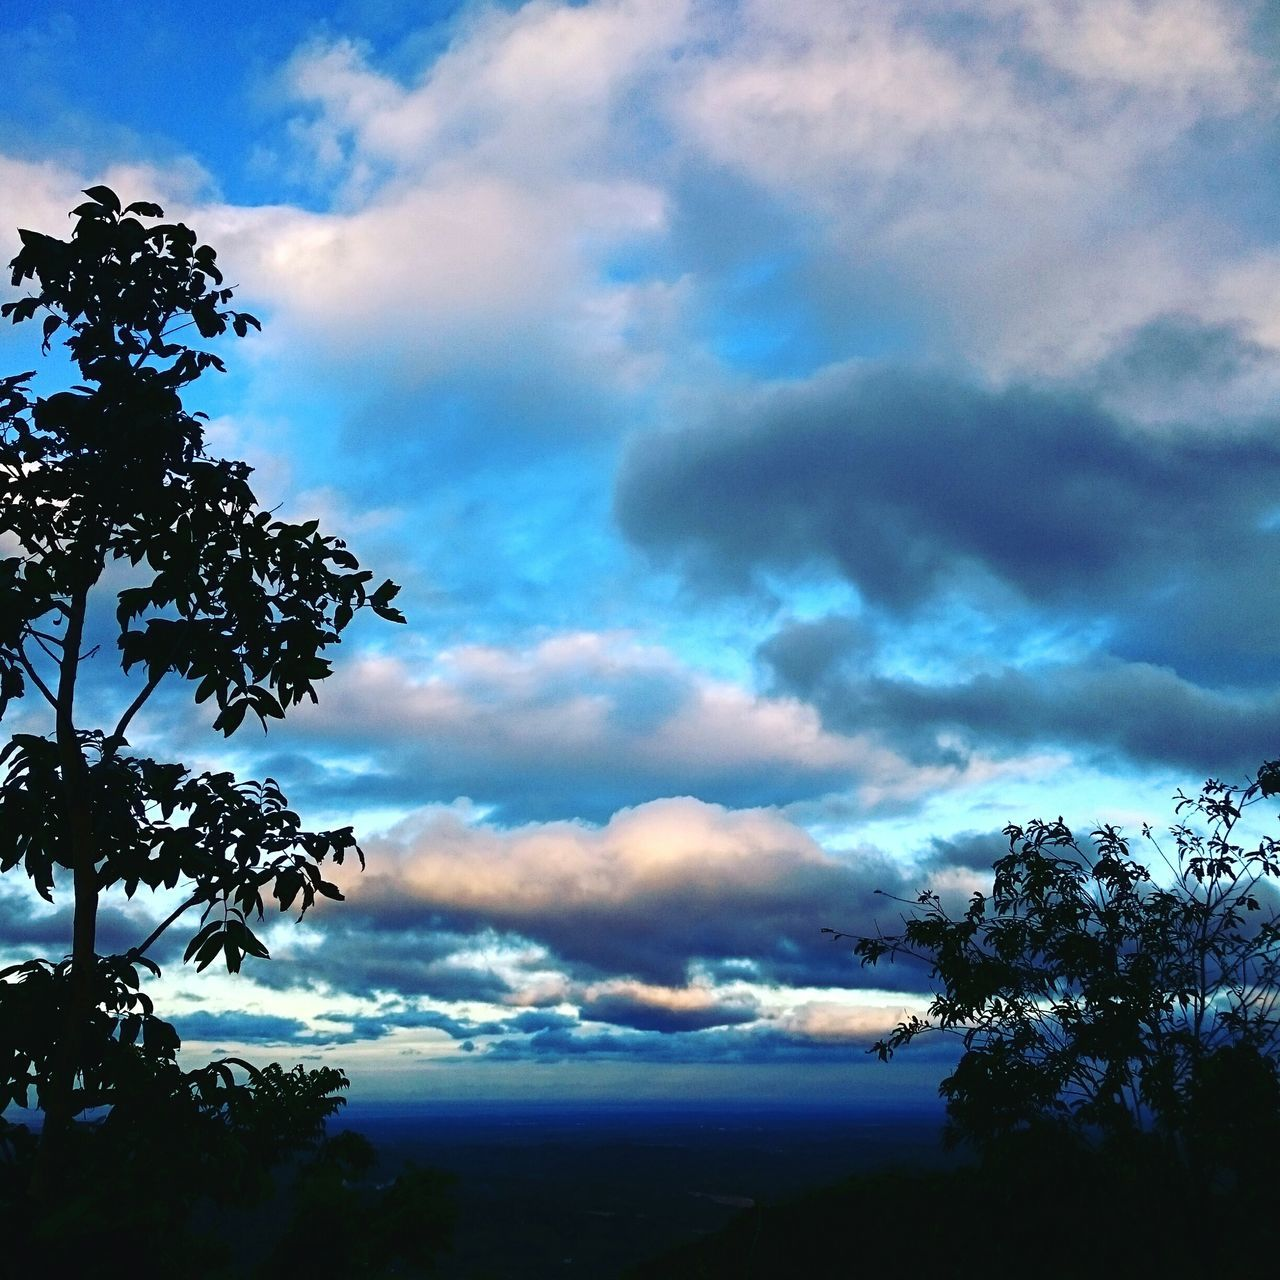 sky, cloud - sky, tree, nature, beauty in nature, scenics, no people, tranquil scene, tranquility, outdoors, day, low angle view, growth, storm cloud